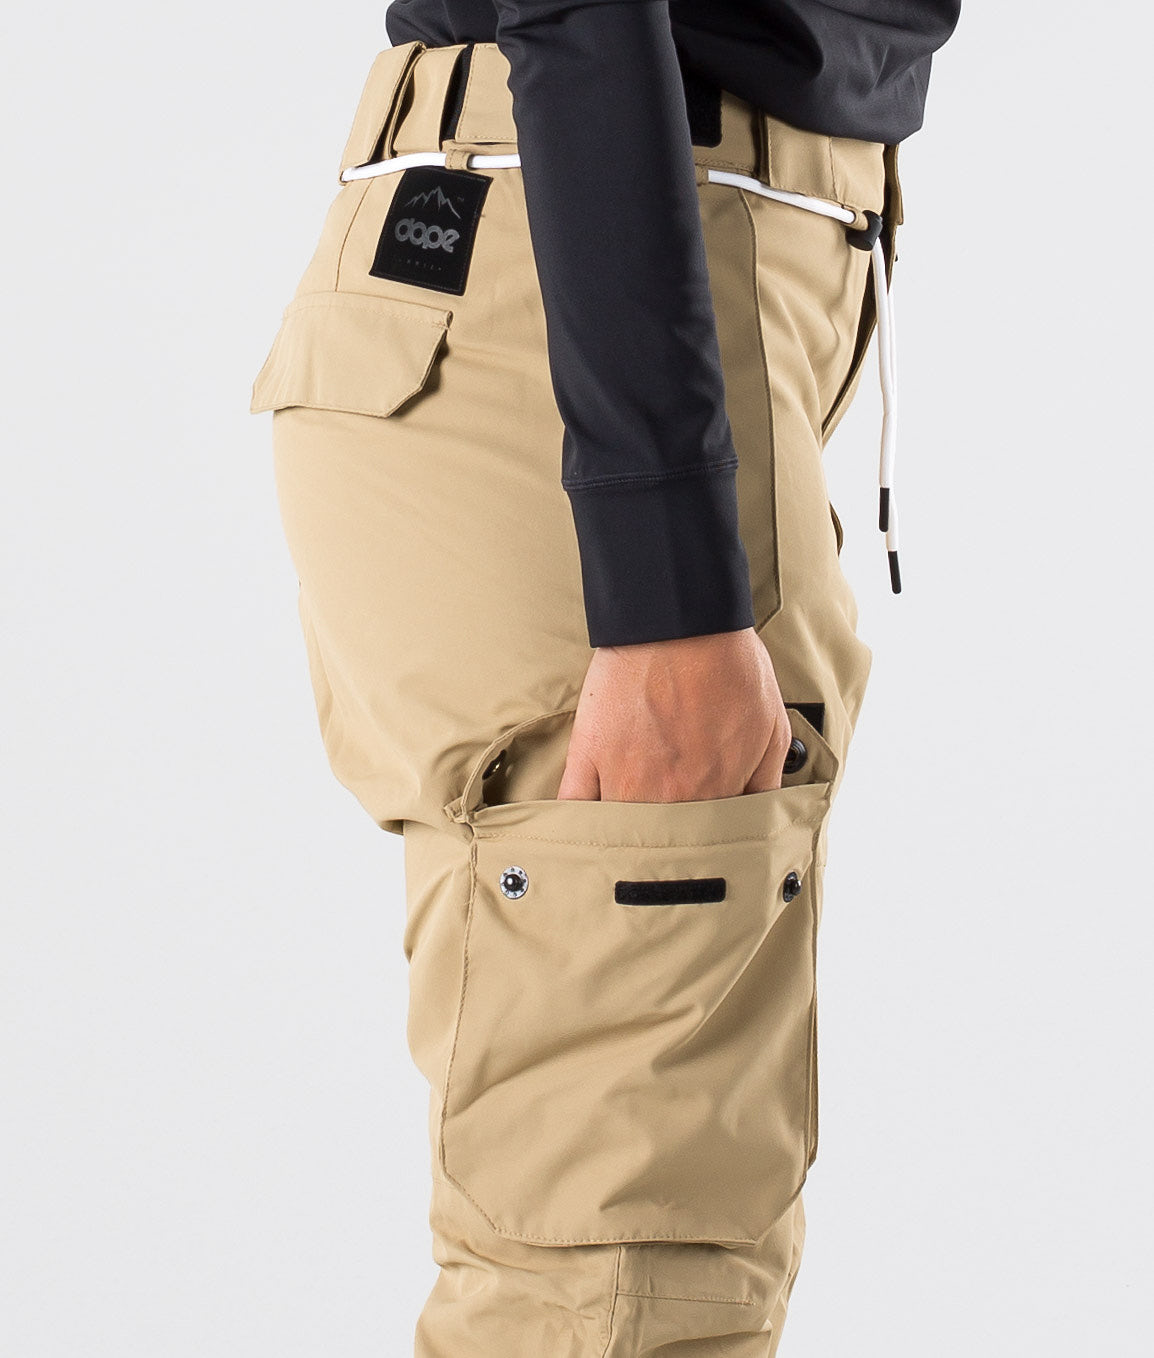 Buy Iconic W Snow Pants from Dope at Ridestore.com - Always free shipping, free returns and 30 days money back guarantee